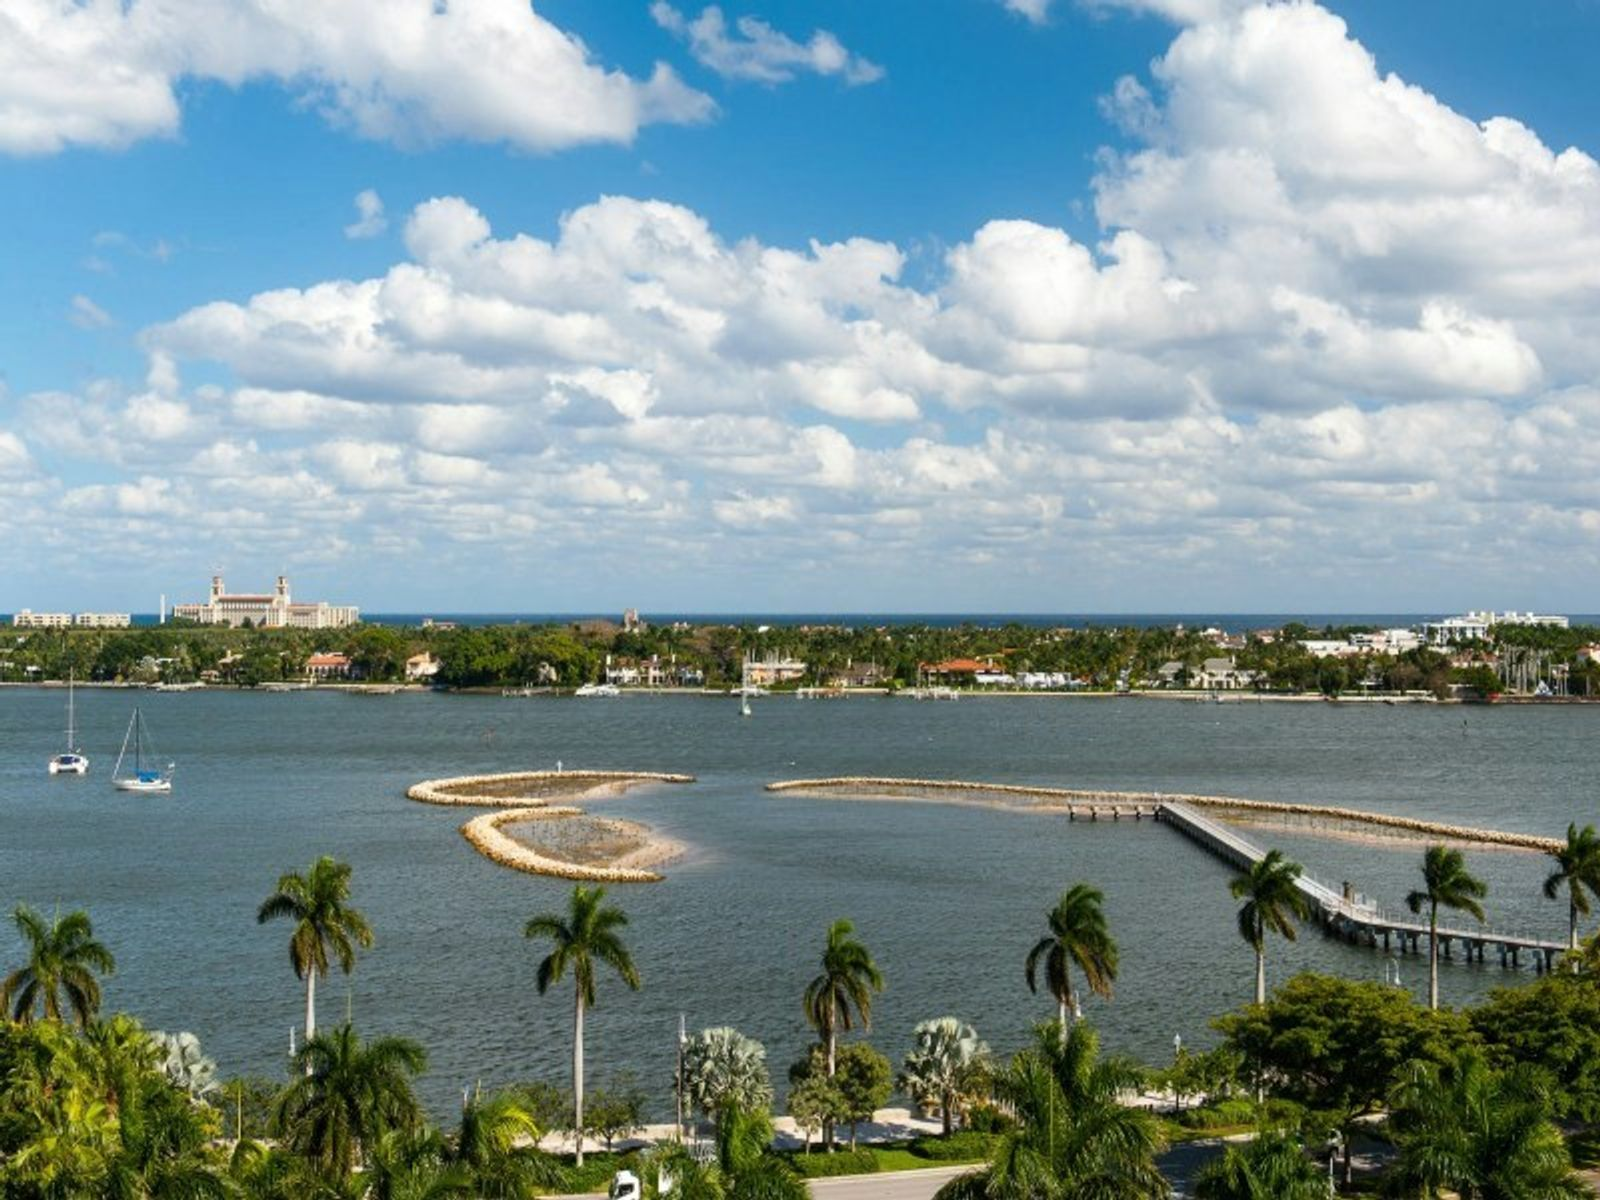 Trump Plaza 9G, West Palm Beach FL High Rise - Palm Beach Real Estate